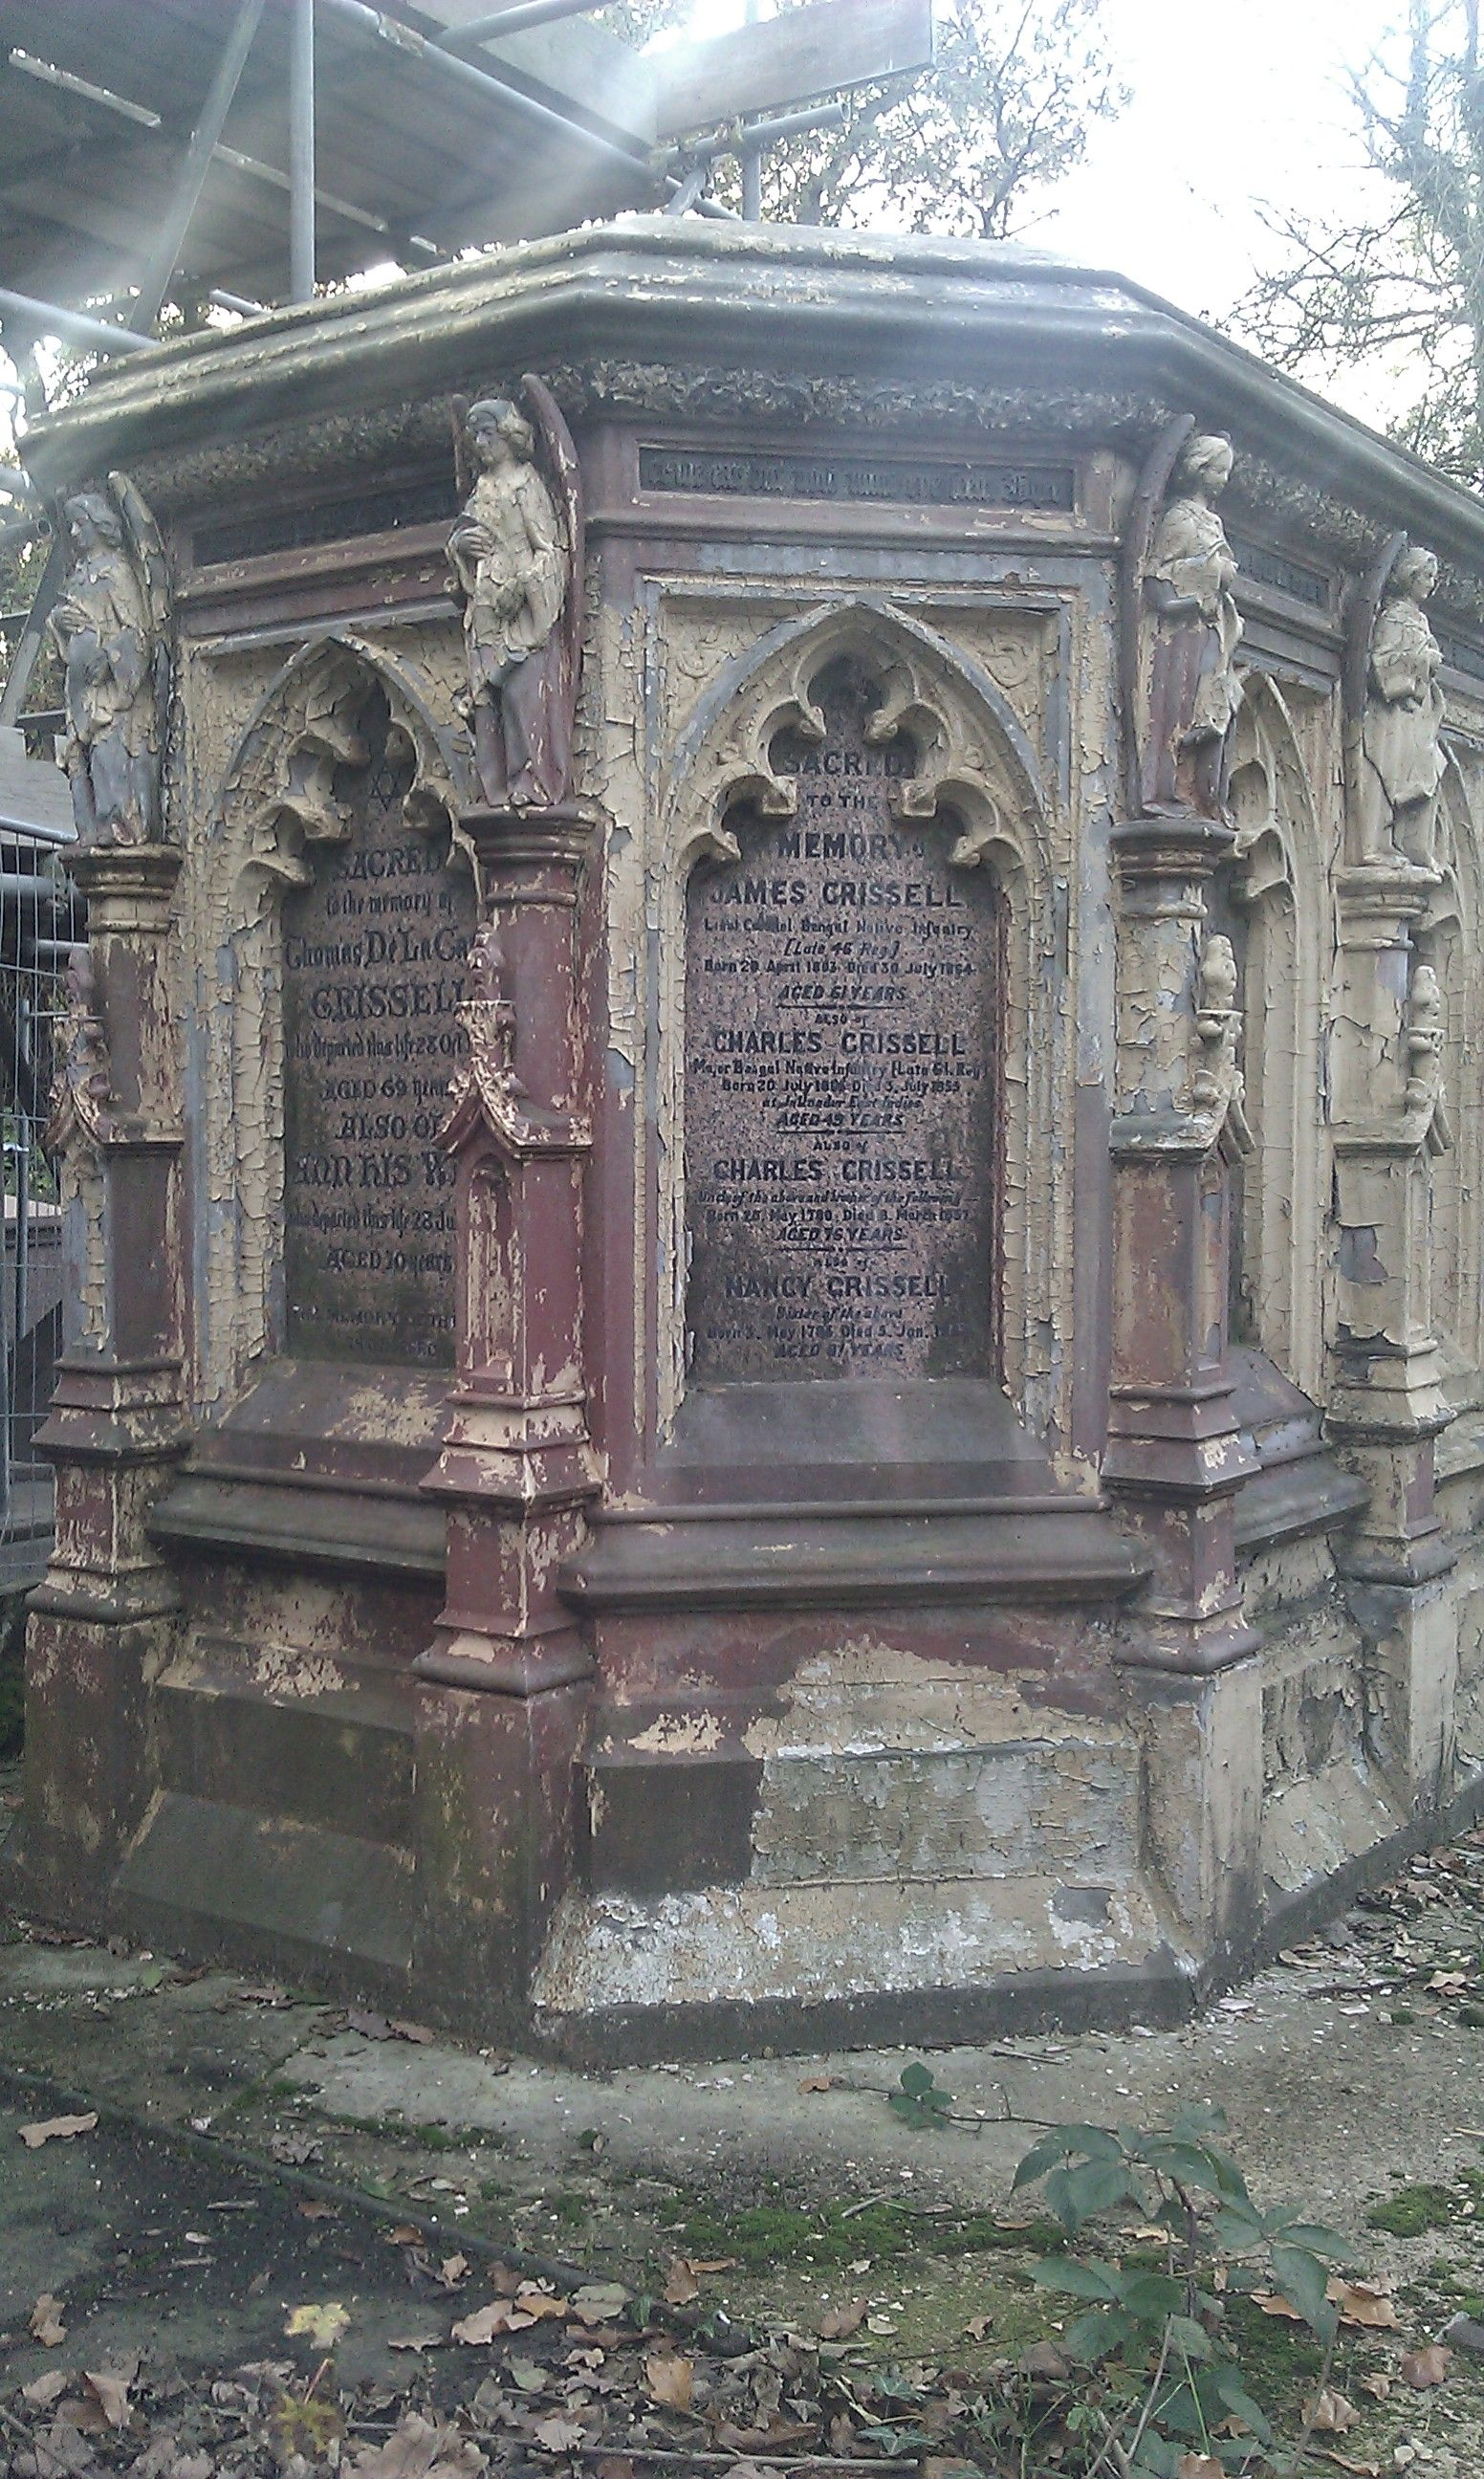 Victorian Mausoleum Vault West Norwood Cemetery London Cemetery Monuments Cemetery Statues Old Cemeteries